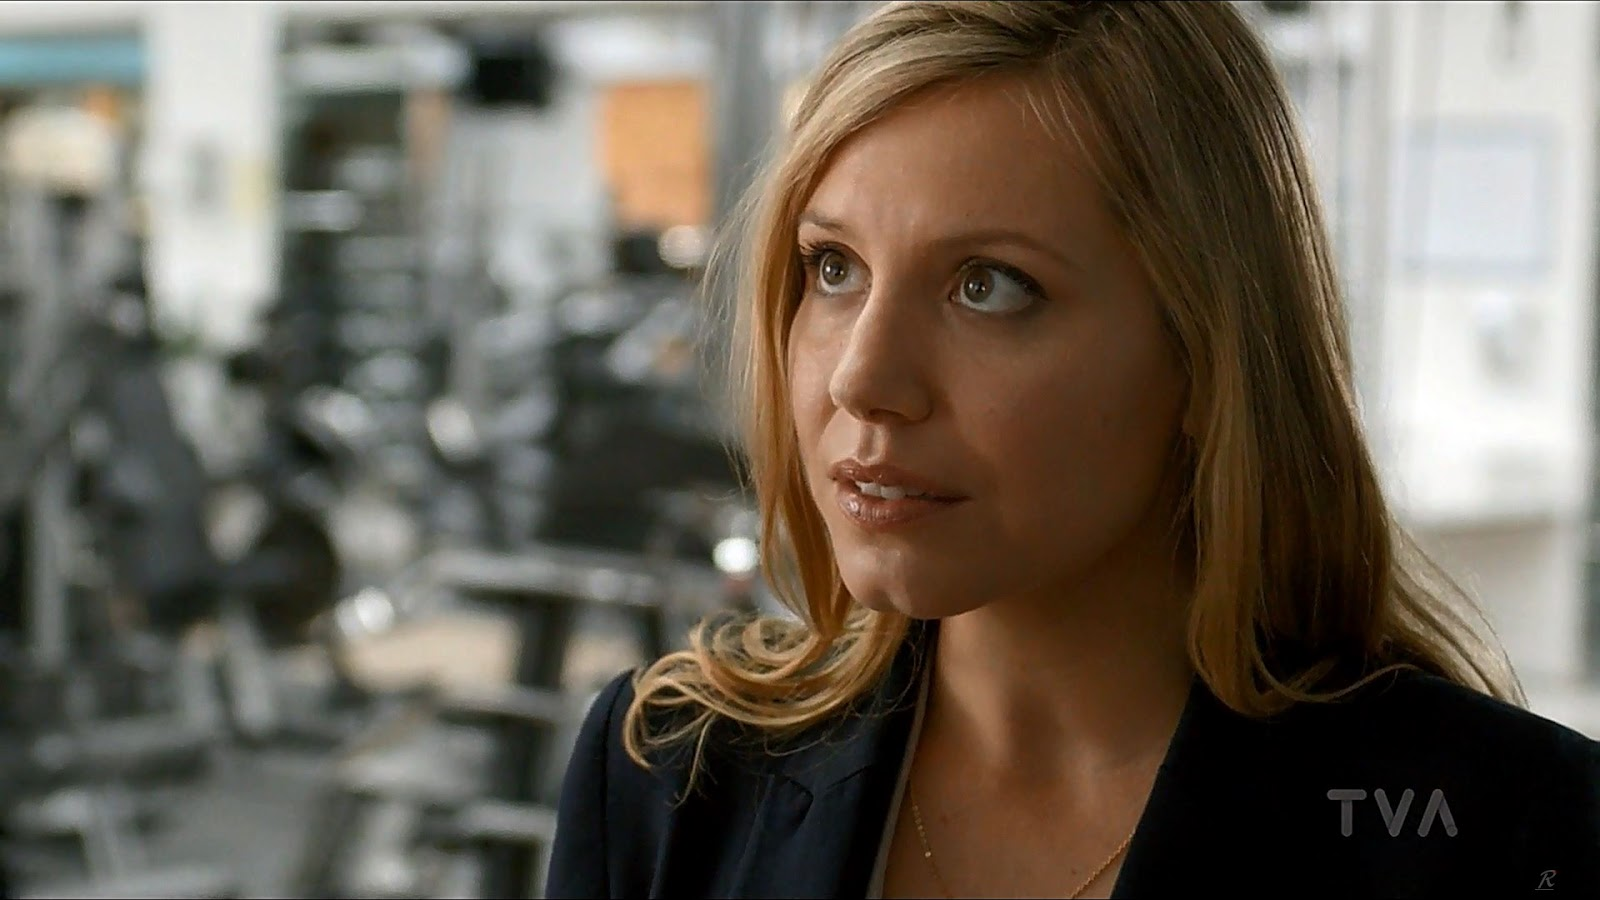 Ludivine sagnier in mesrine public enemy 2008 - 3 6